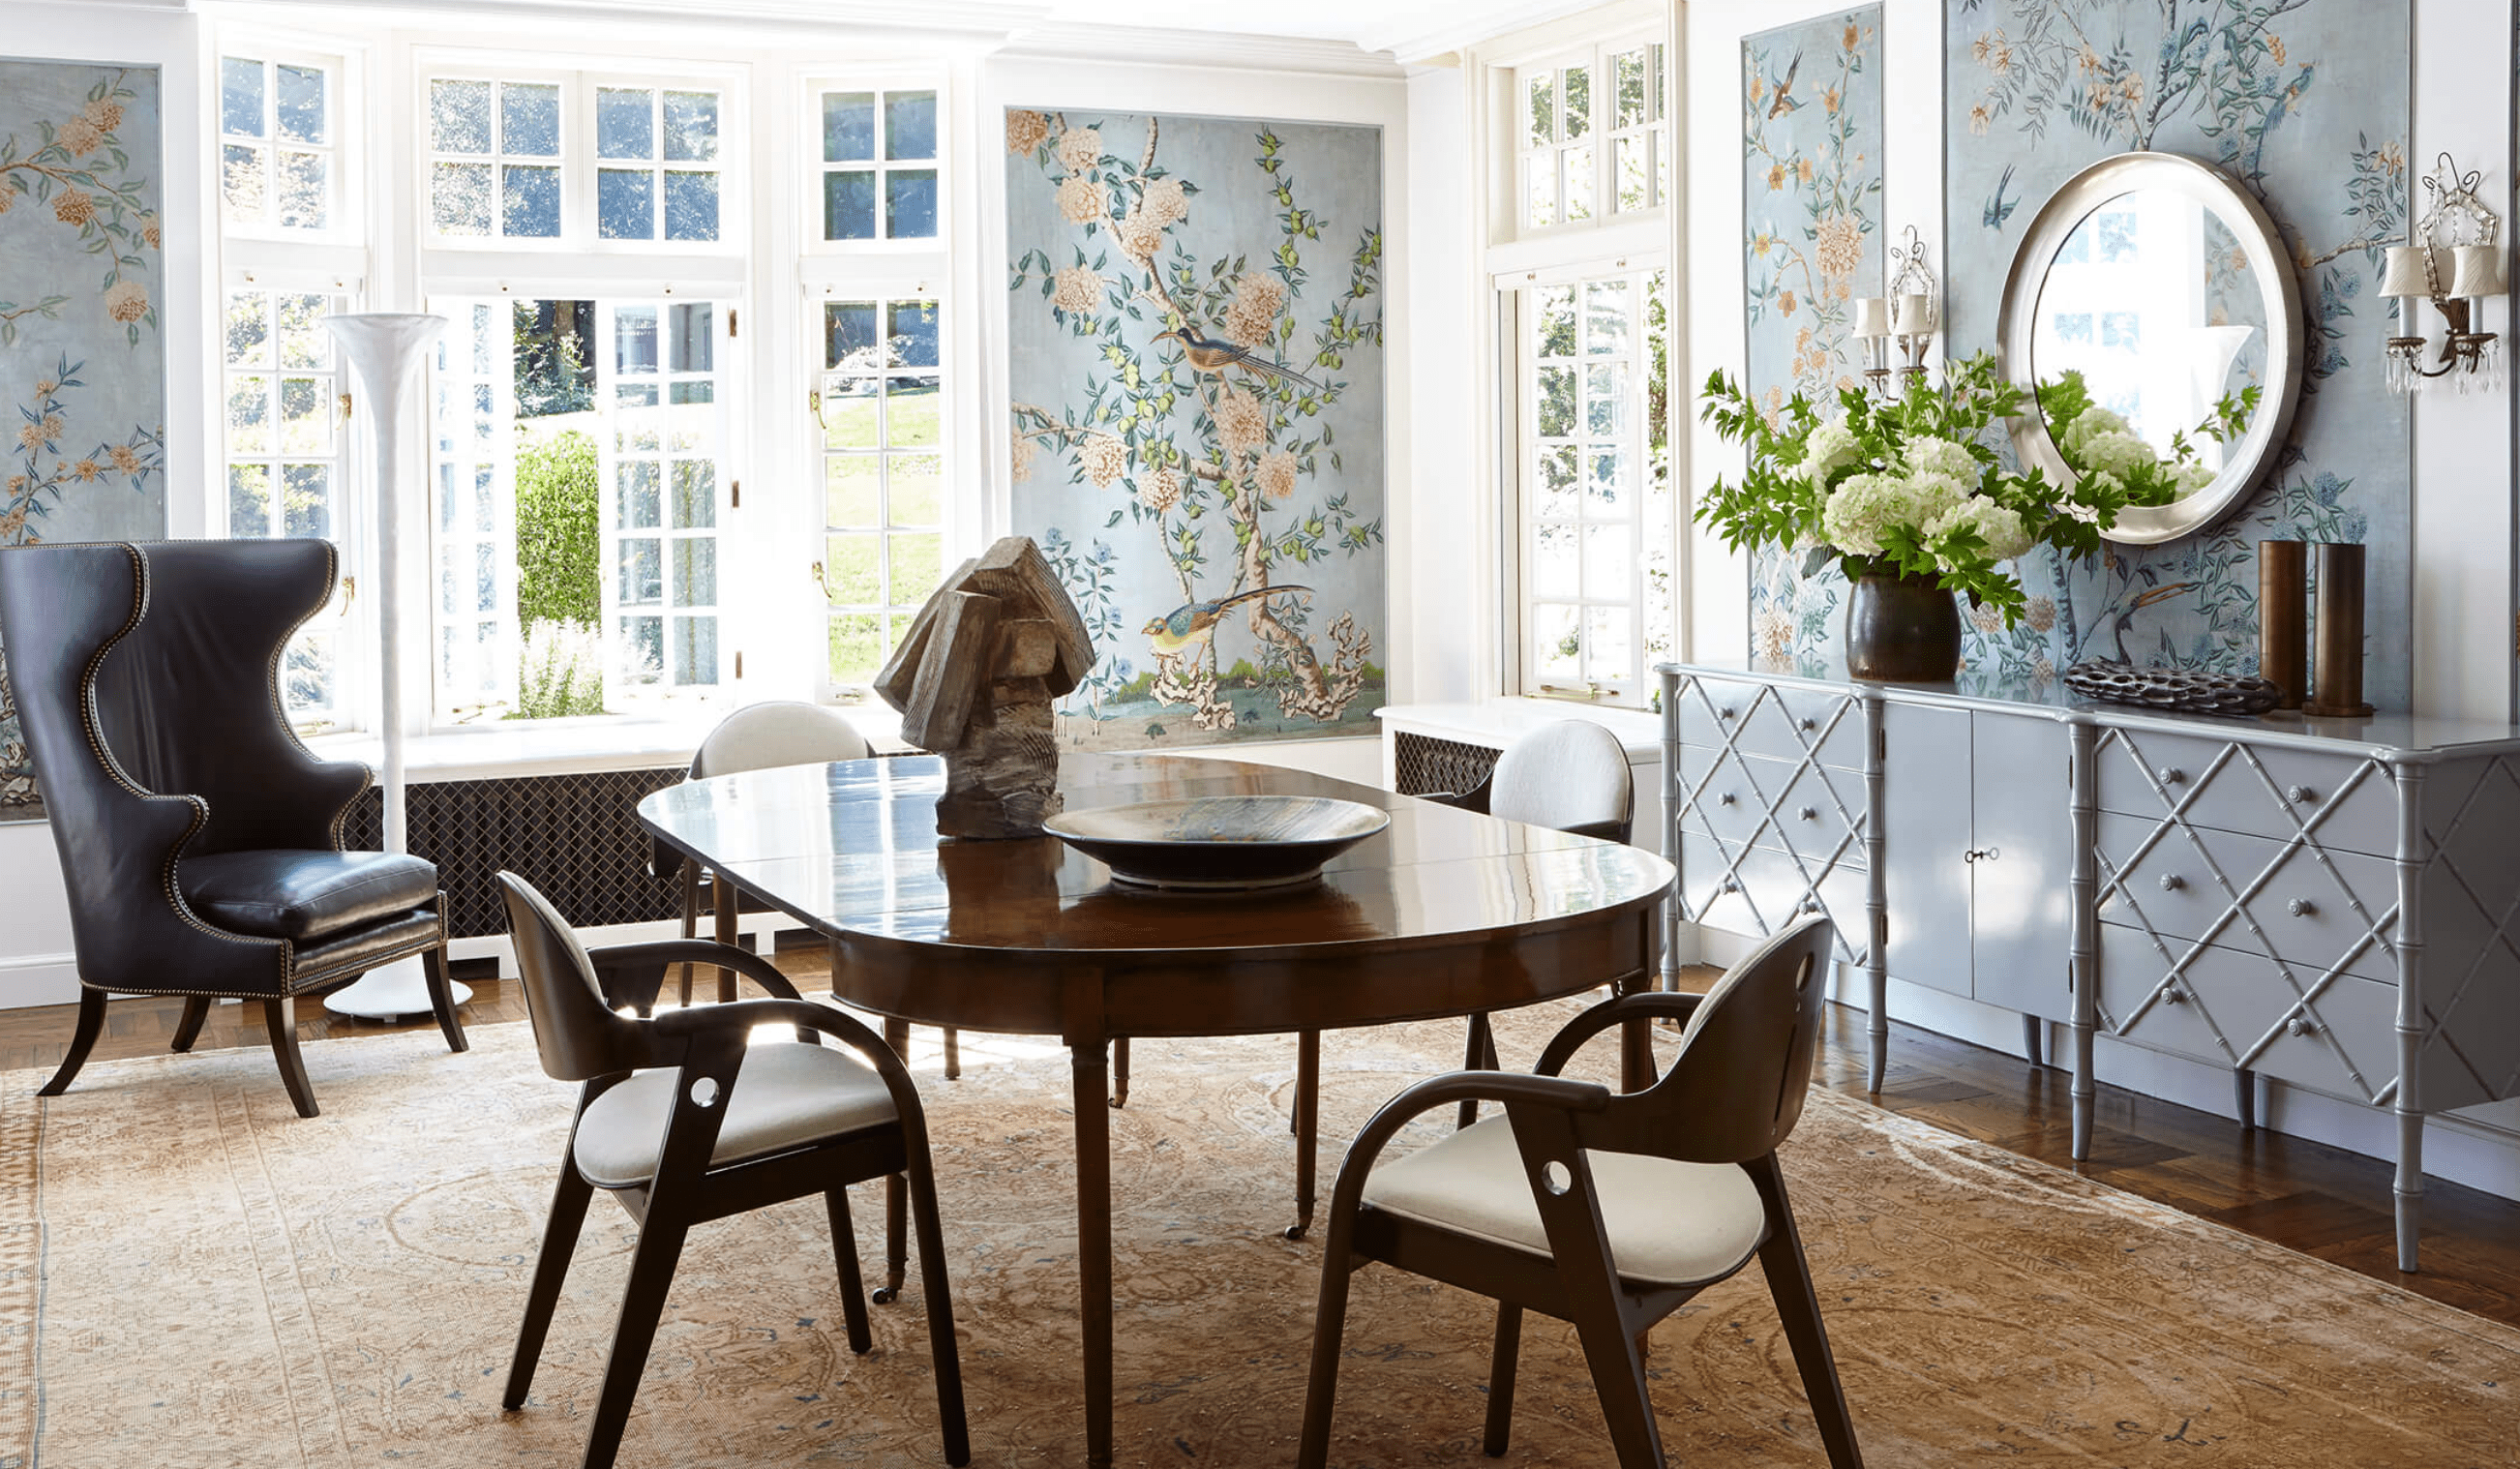 A dining room decorated with light blue floral wallpaper panels